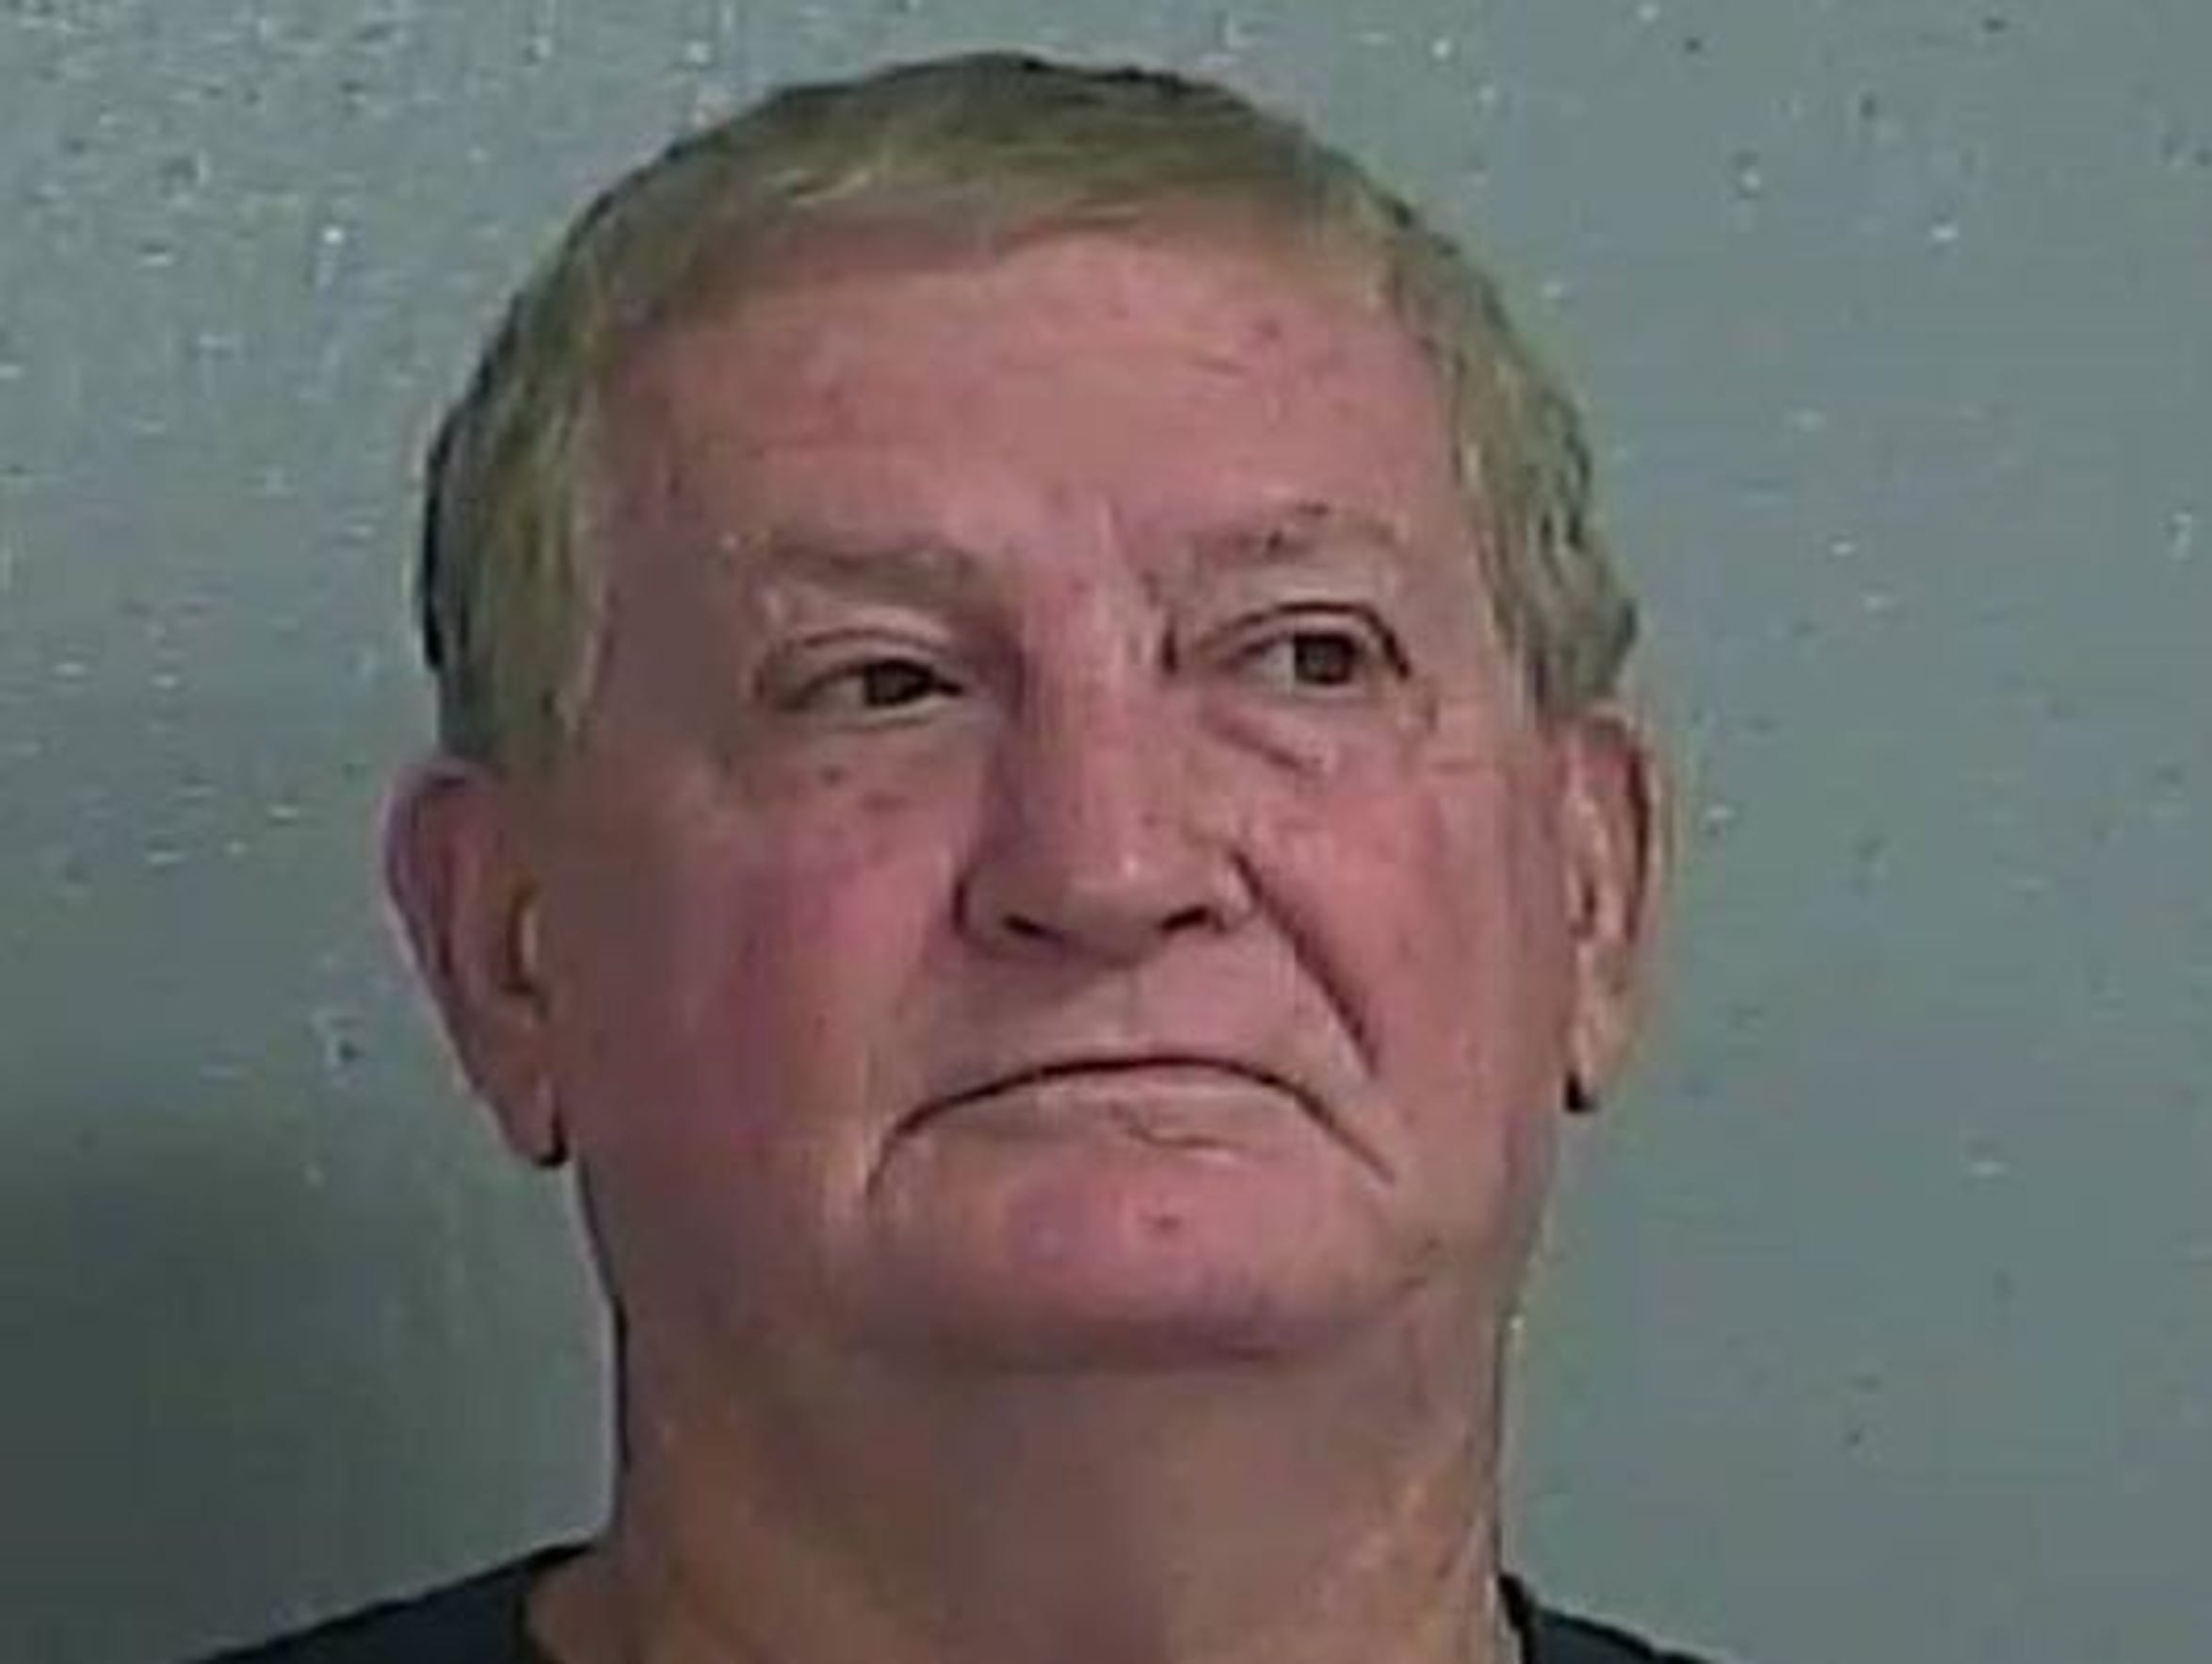 Ronnie White mugshot from the Greene County Jail.